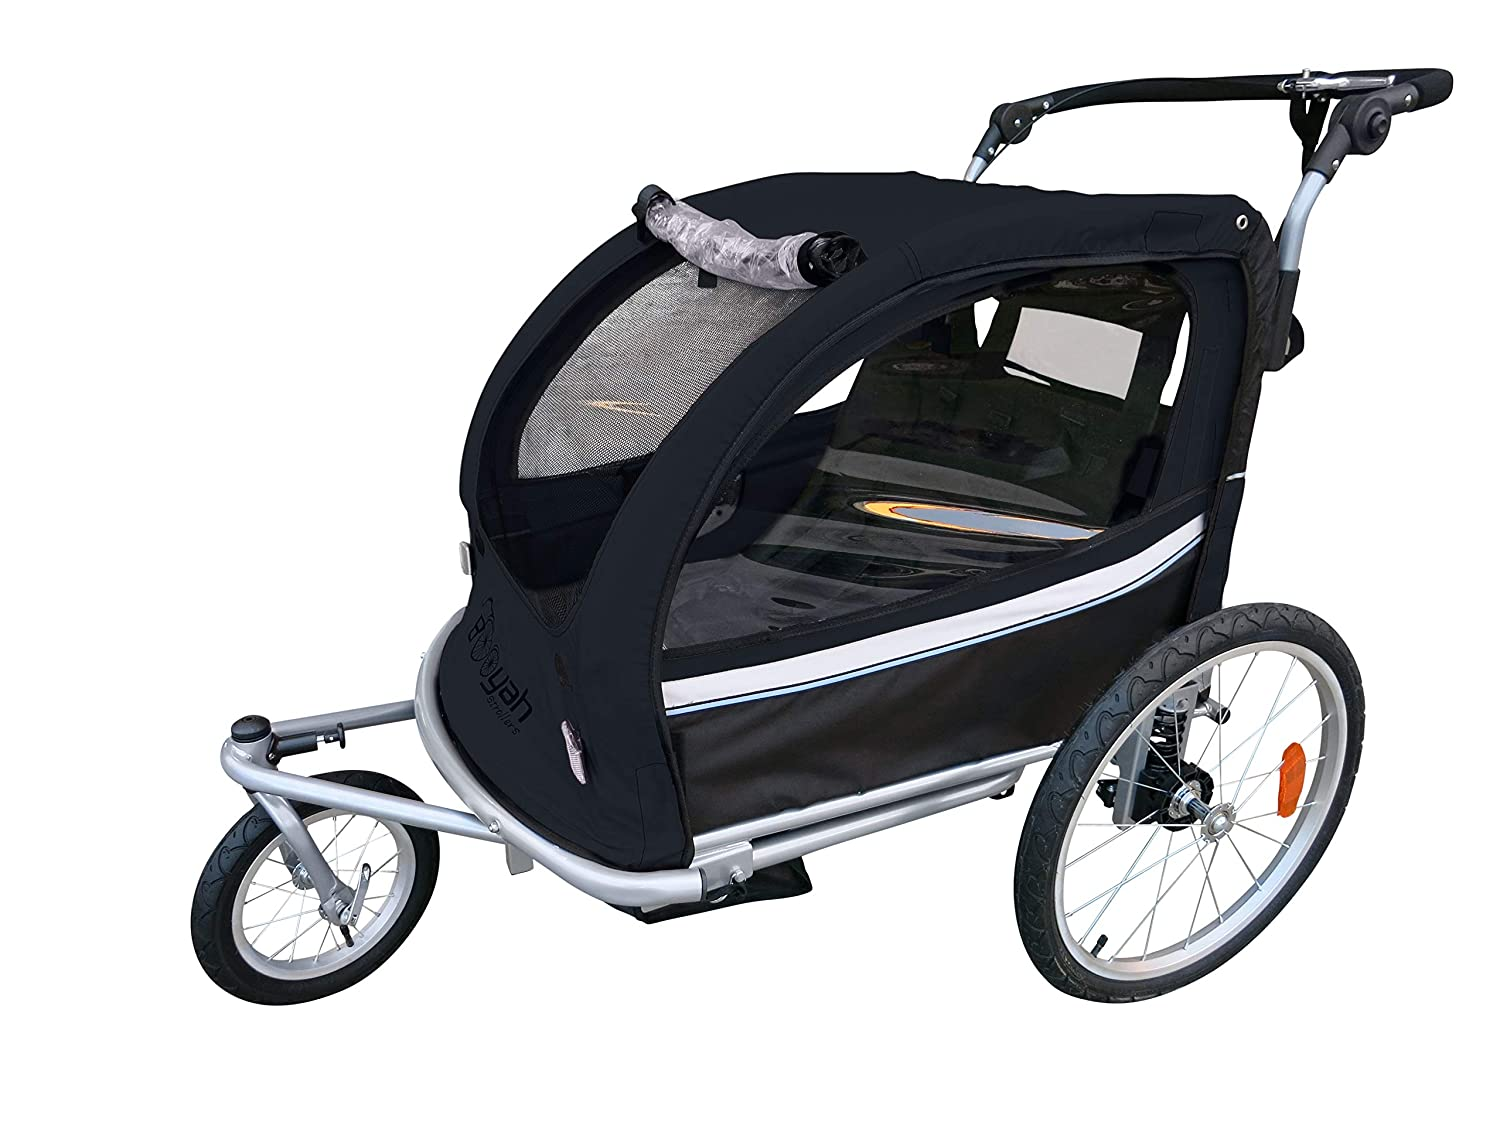 Booyah Strollers Child Baby Bike Bicycle Trailer and Stroller II